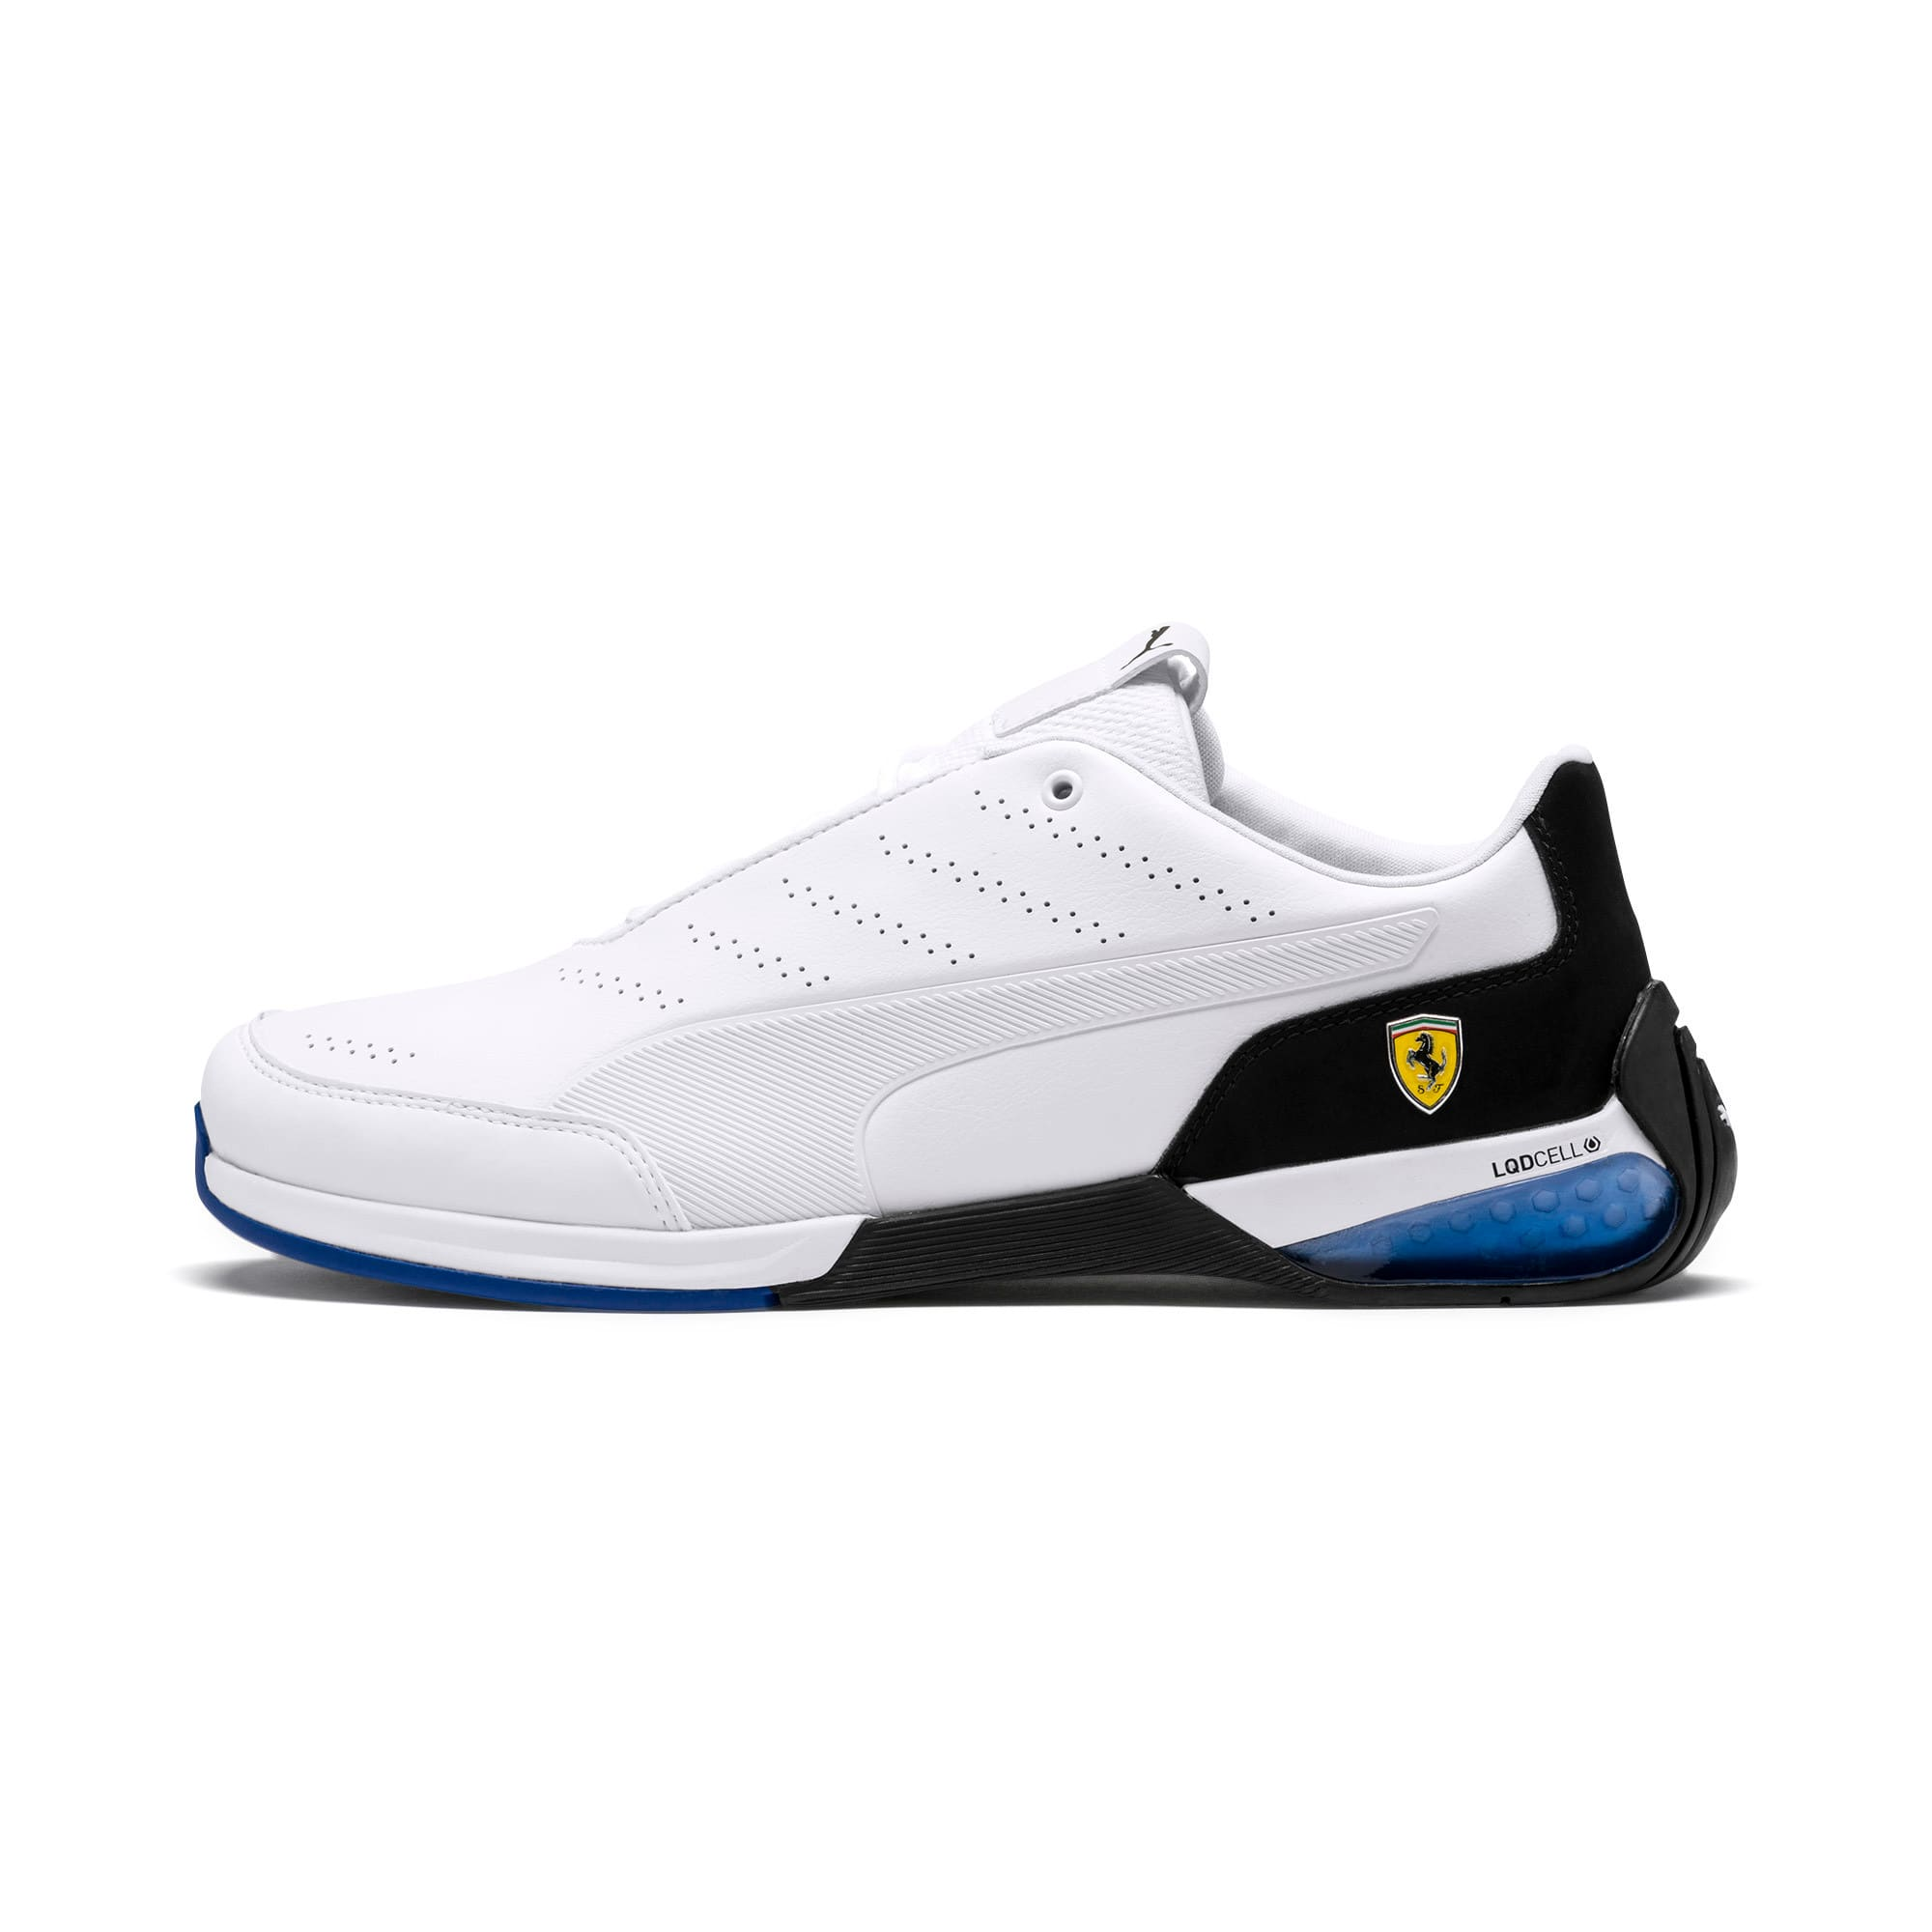 Thumbnail 1 of Ferrari Kart Cat X Trainers, Puma White-Puma Black, medium-IND